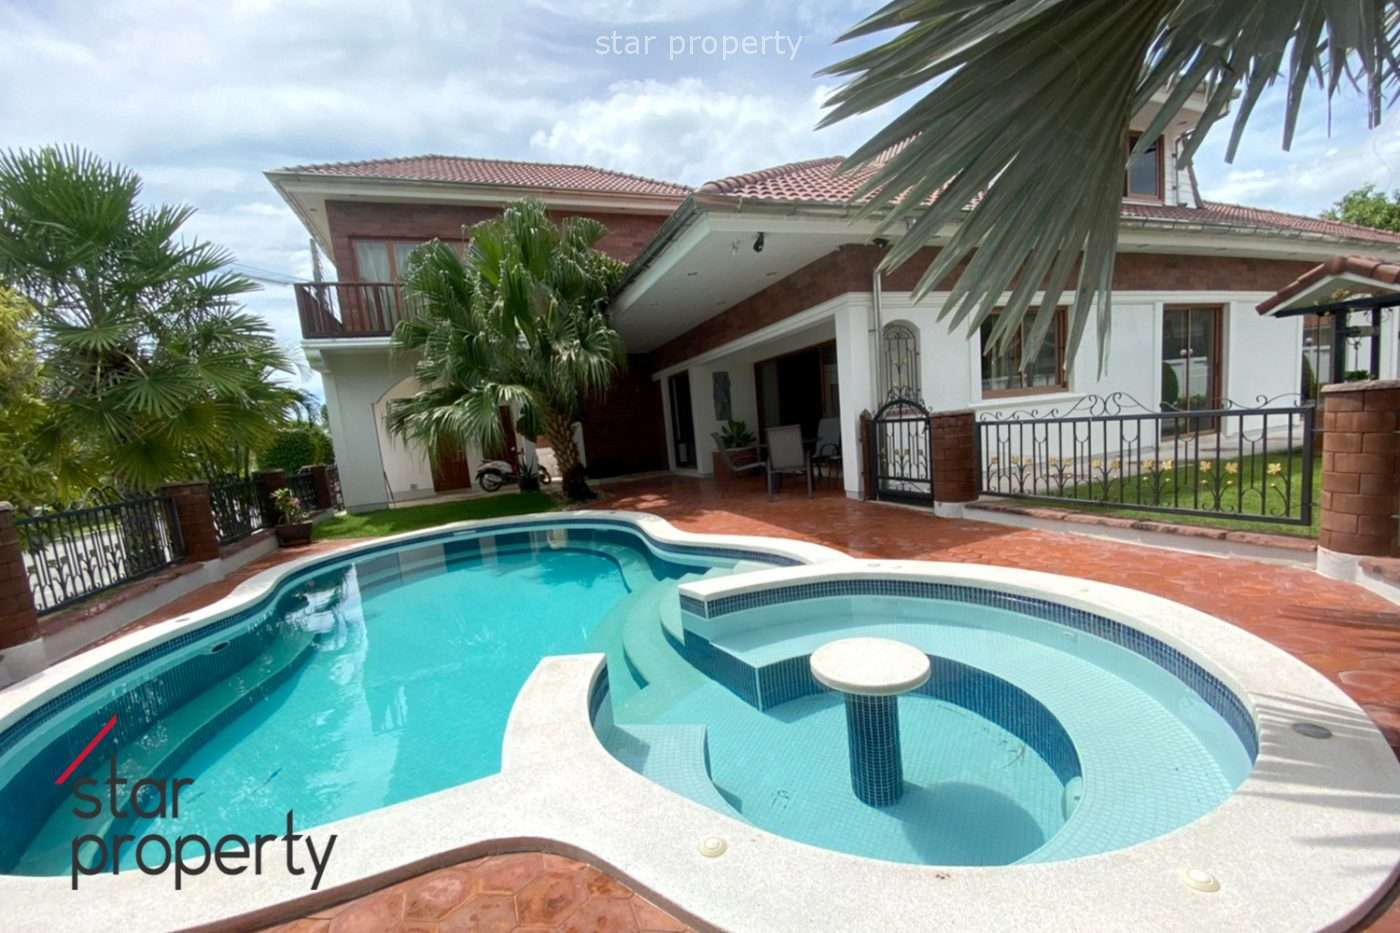 Pool Villa near Palm Hill Golf Course for rent